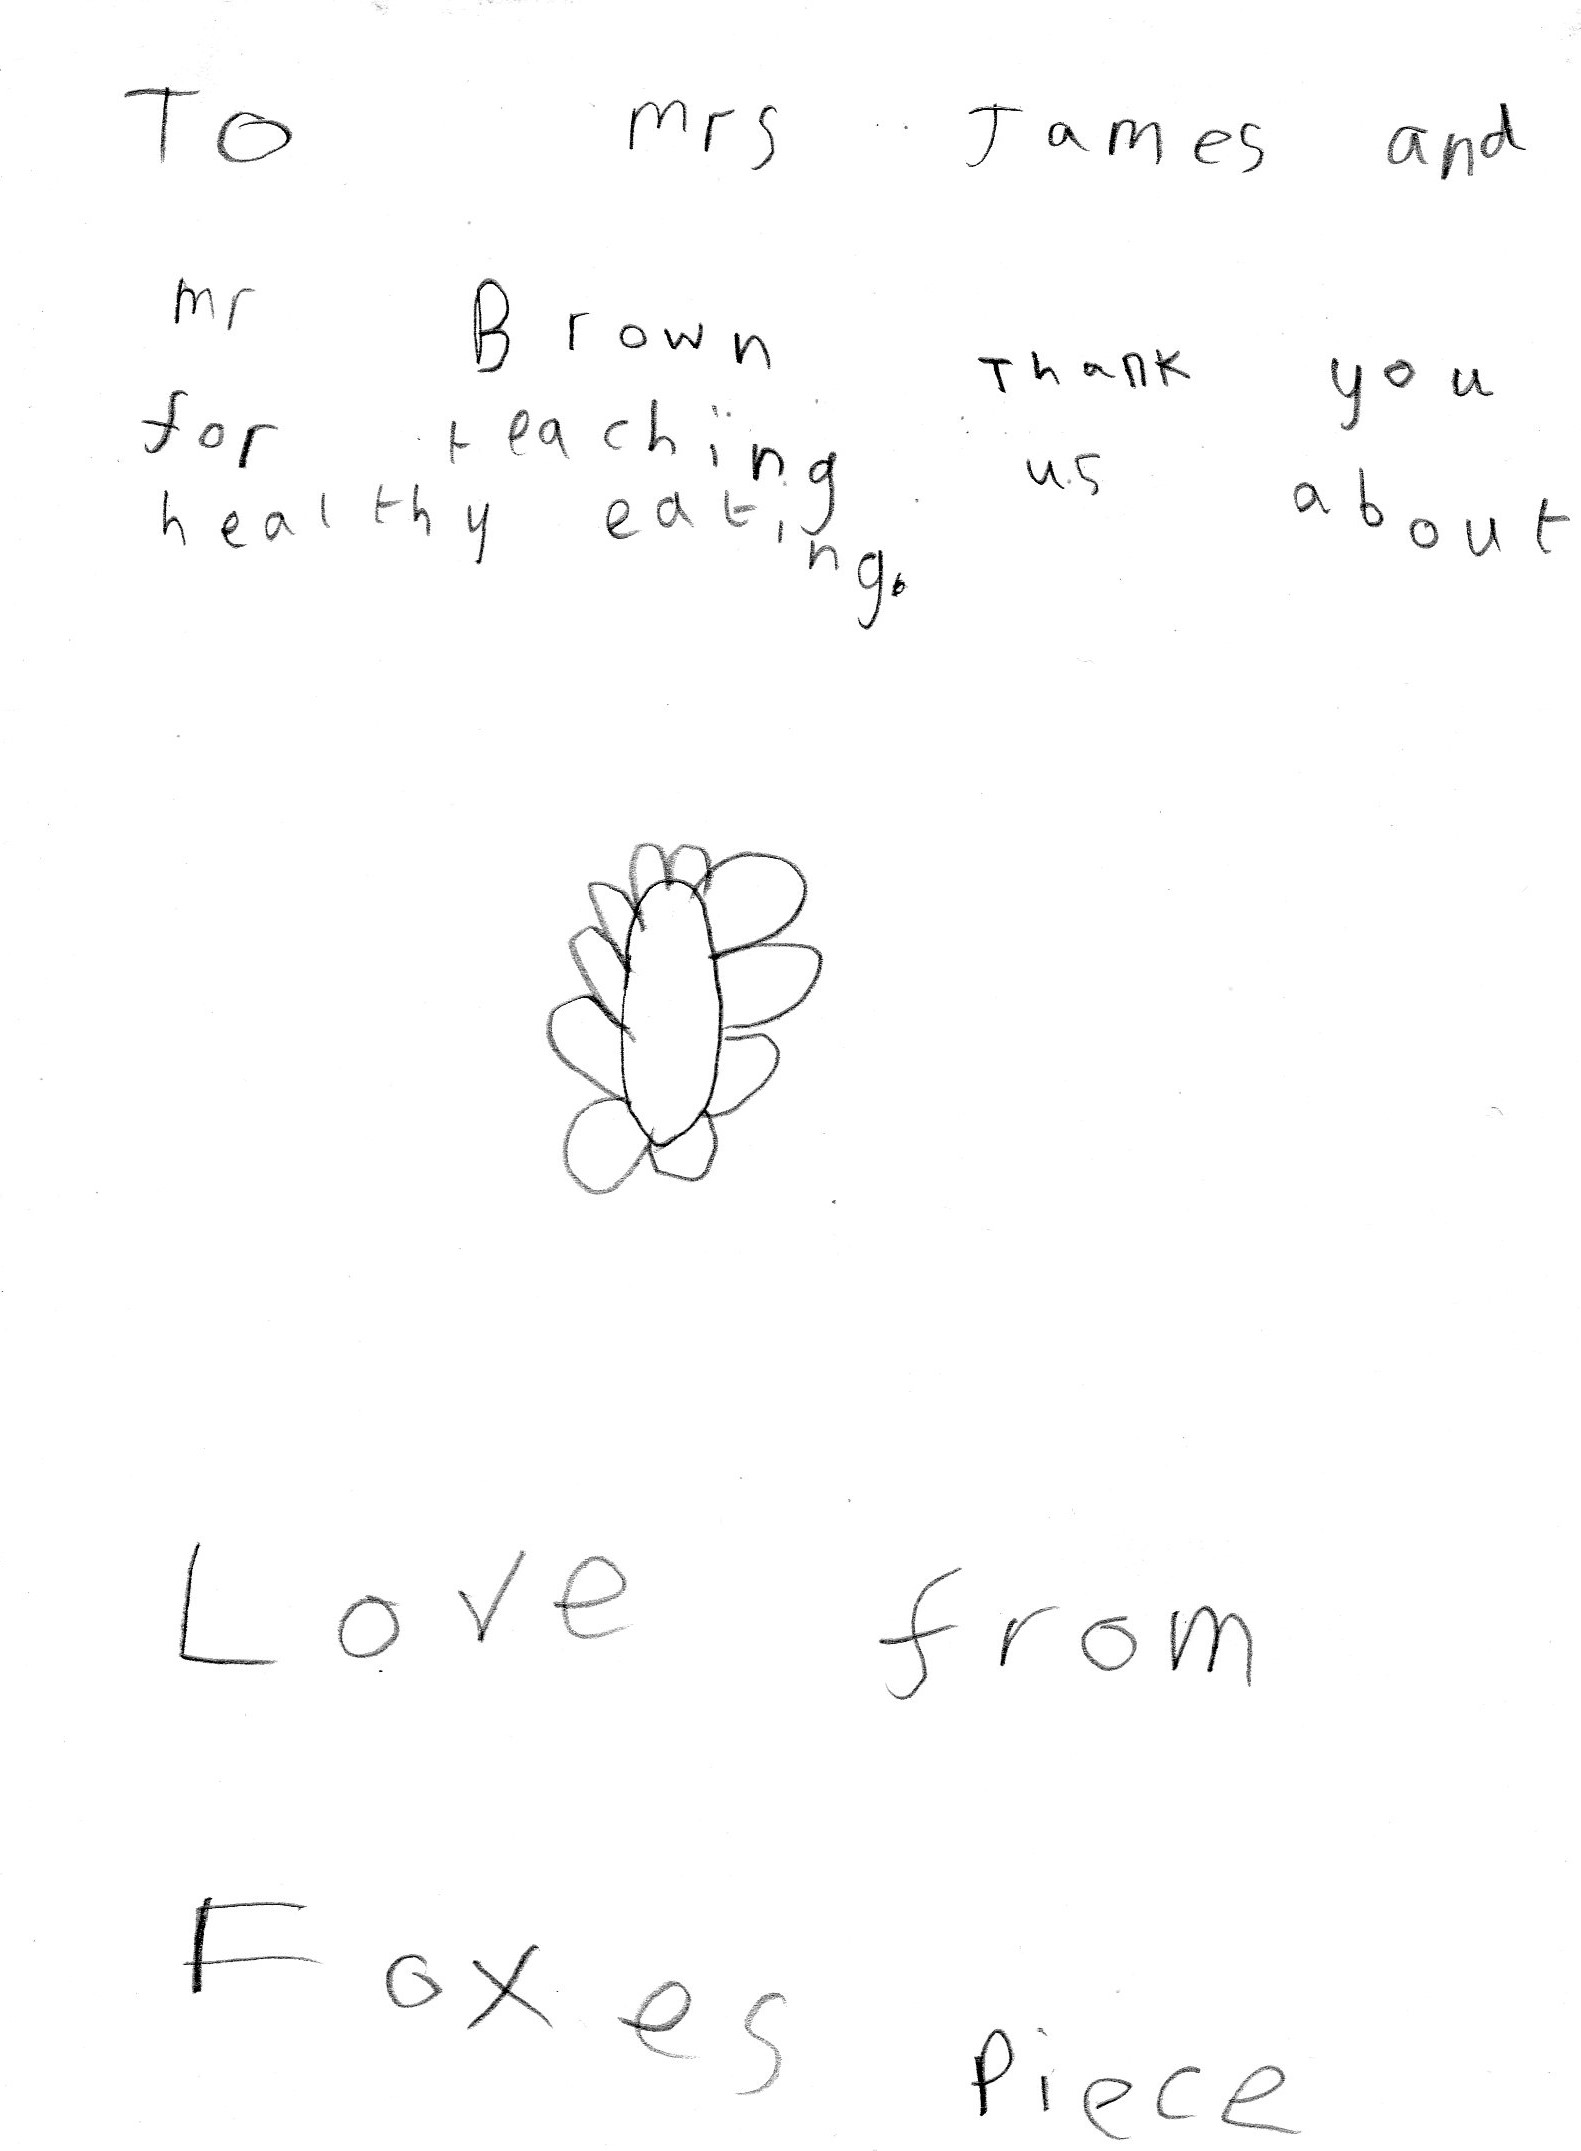 Foxes Piece thank you card from children inside.jpg